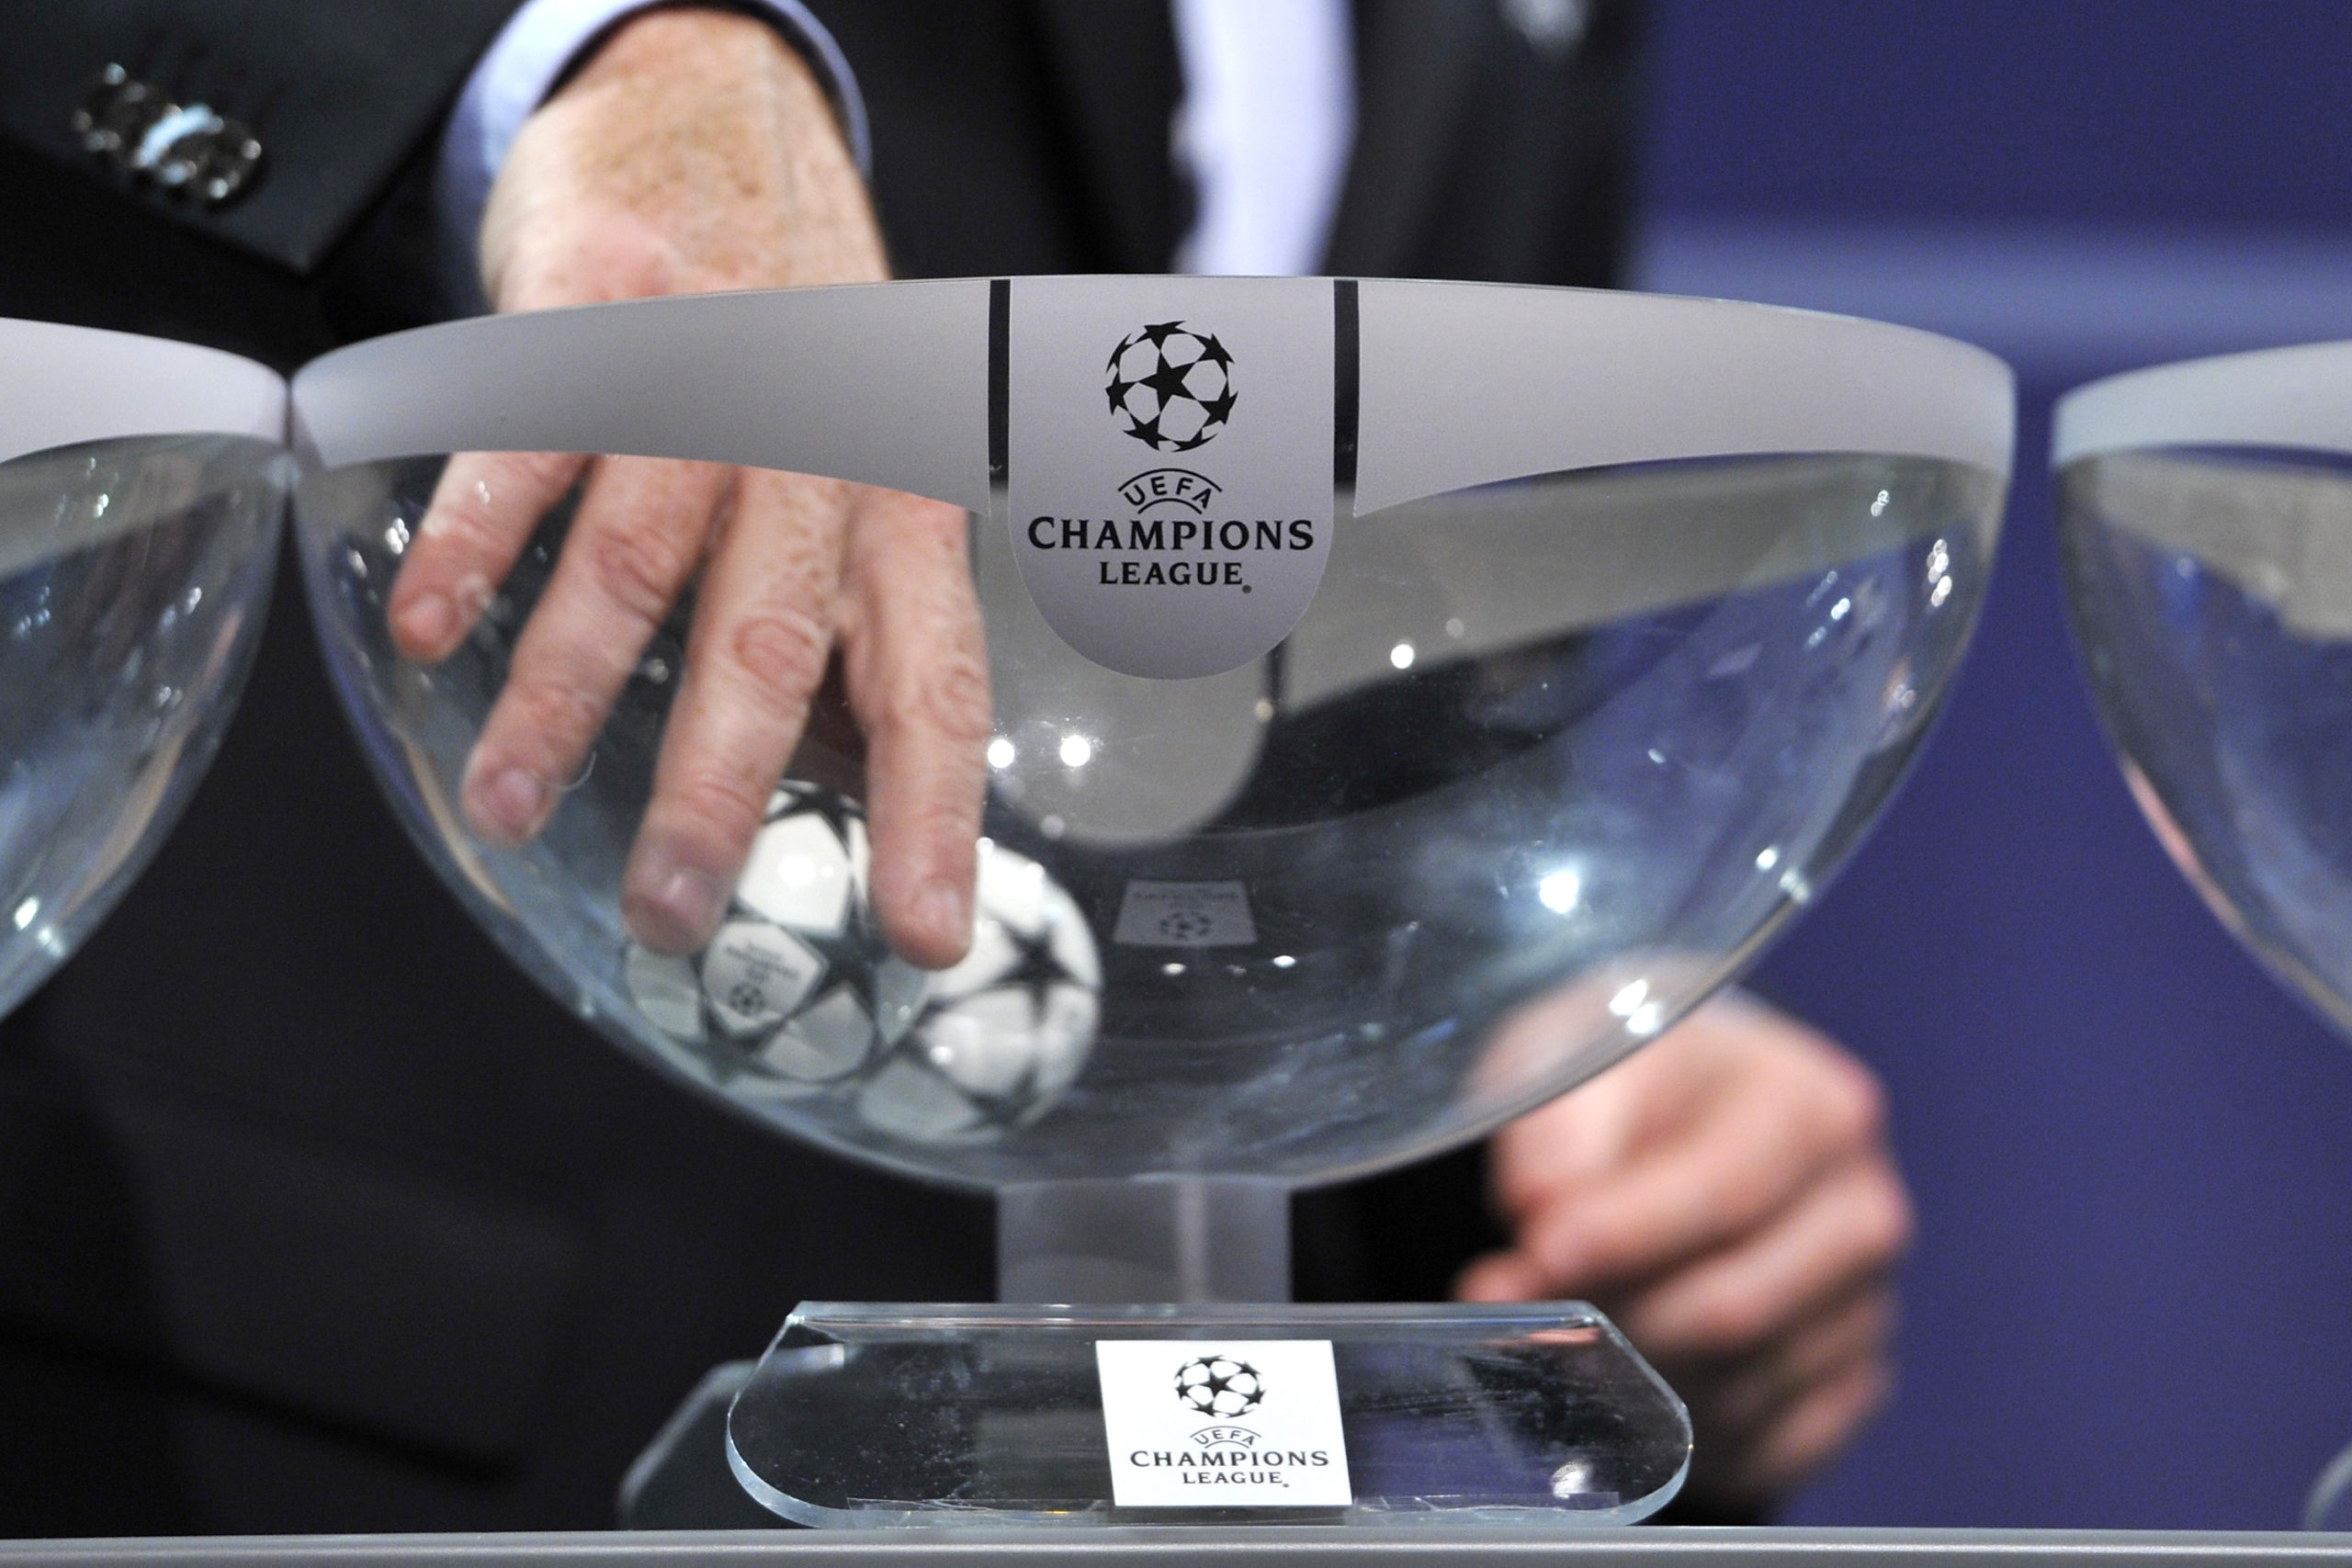 The Champions League groups will one day involve Celtic again